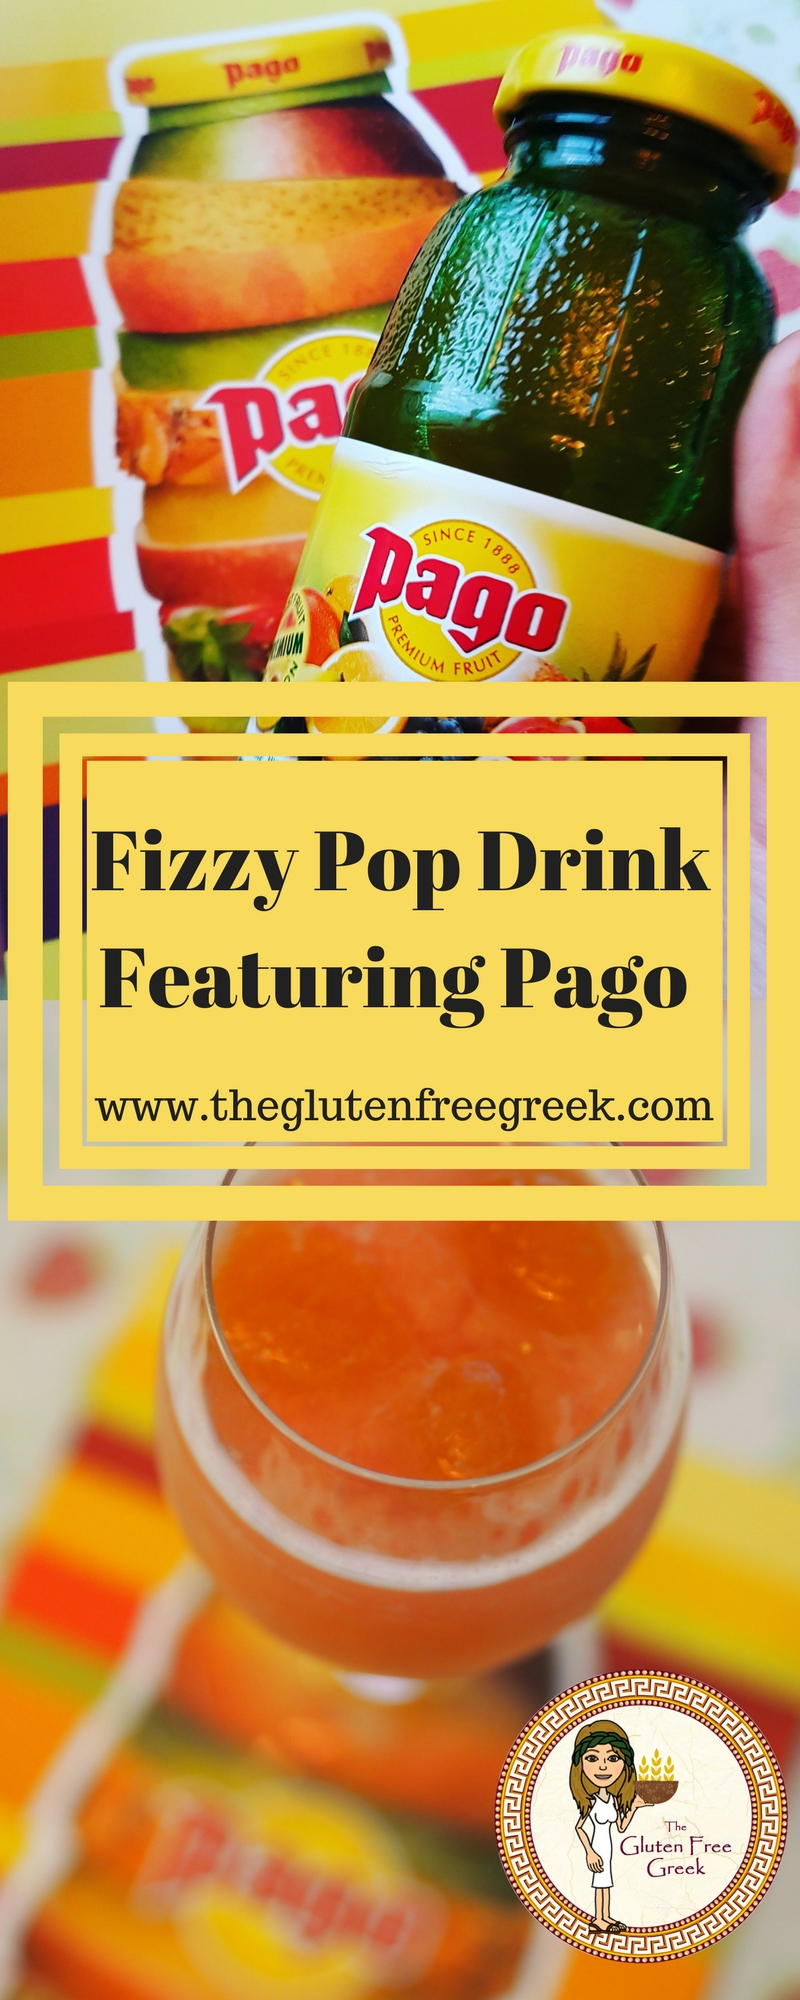 pago fruit juice